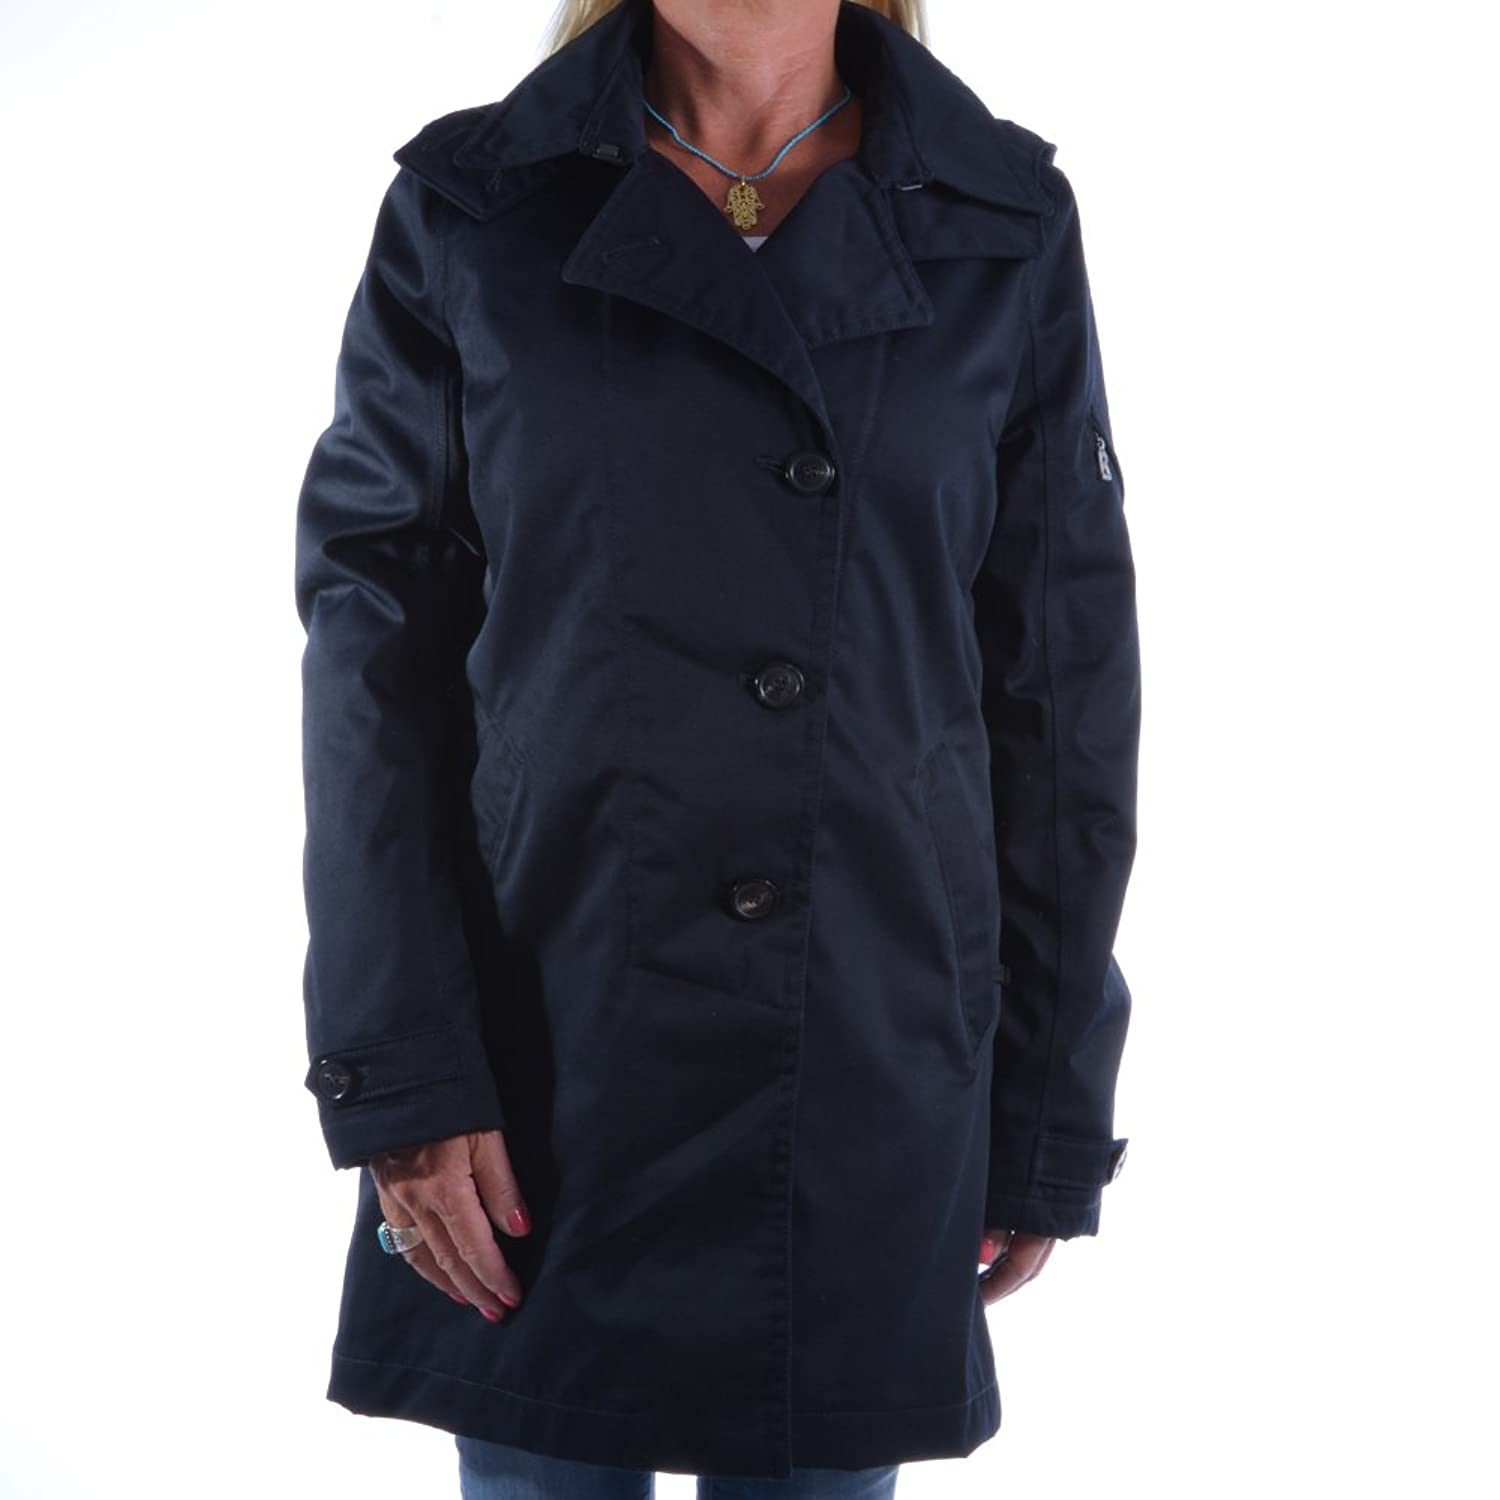 Bogner Fire + Ice Damenjacke Christin Gr. 36 699 3480 Midnight 449 Damen Jacke Jacken günstig kaufen